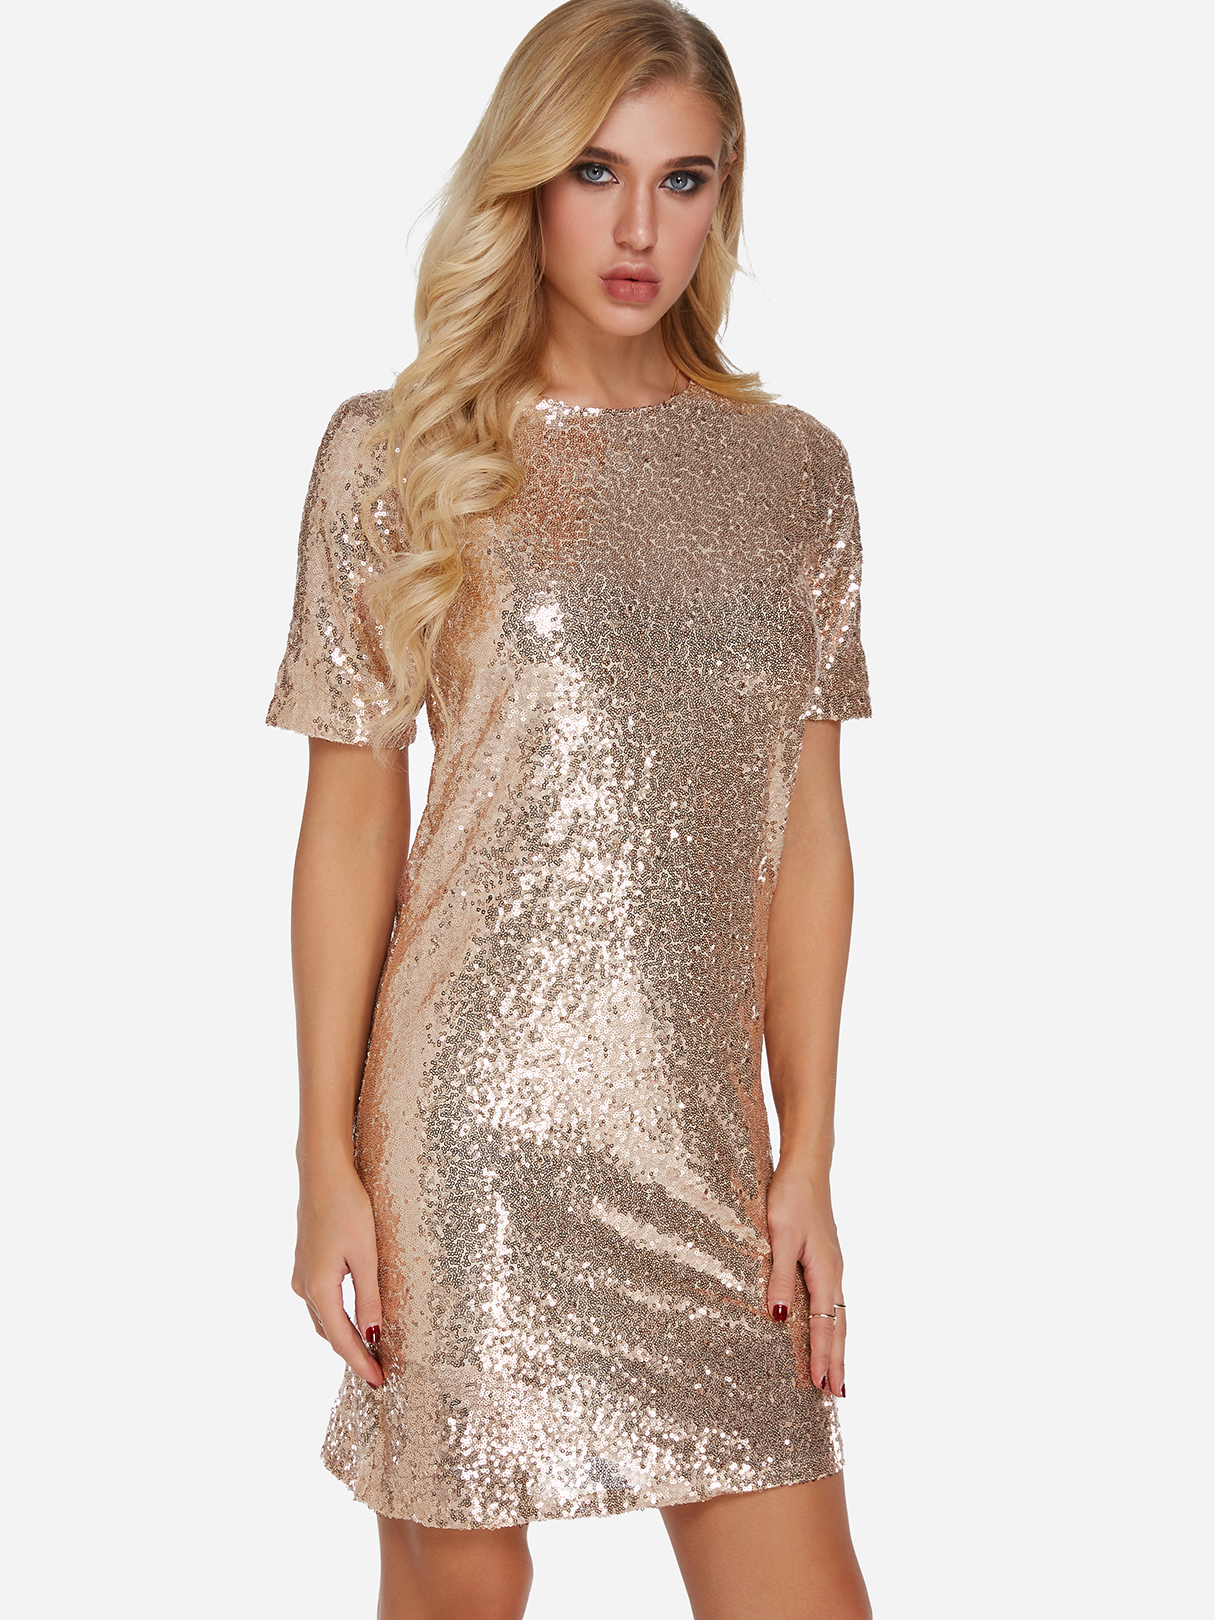 Rose Gold Sequins Embellished Round Neck Short Sleeves Dress